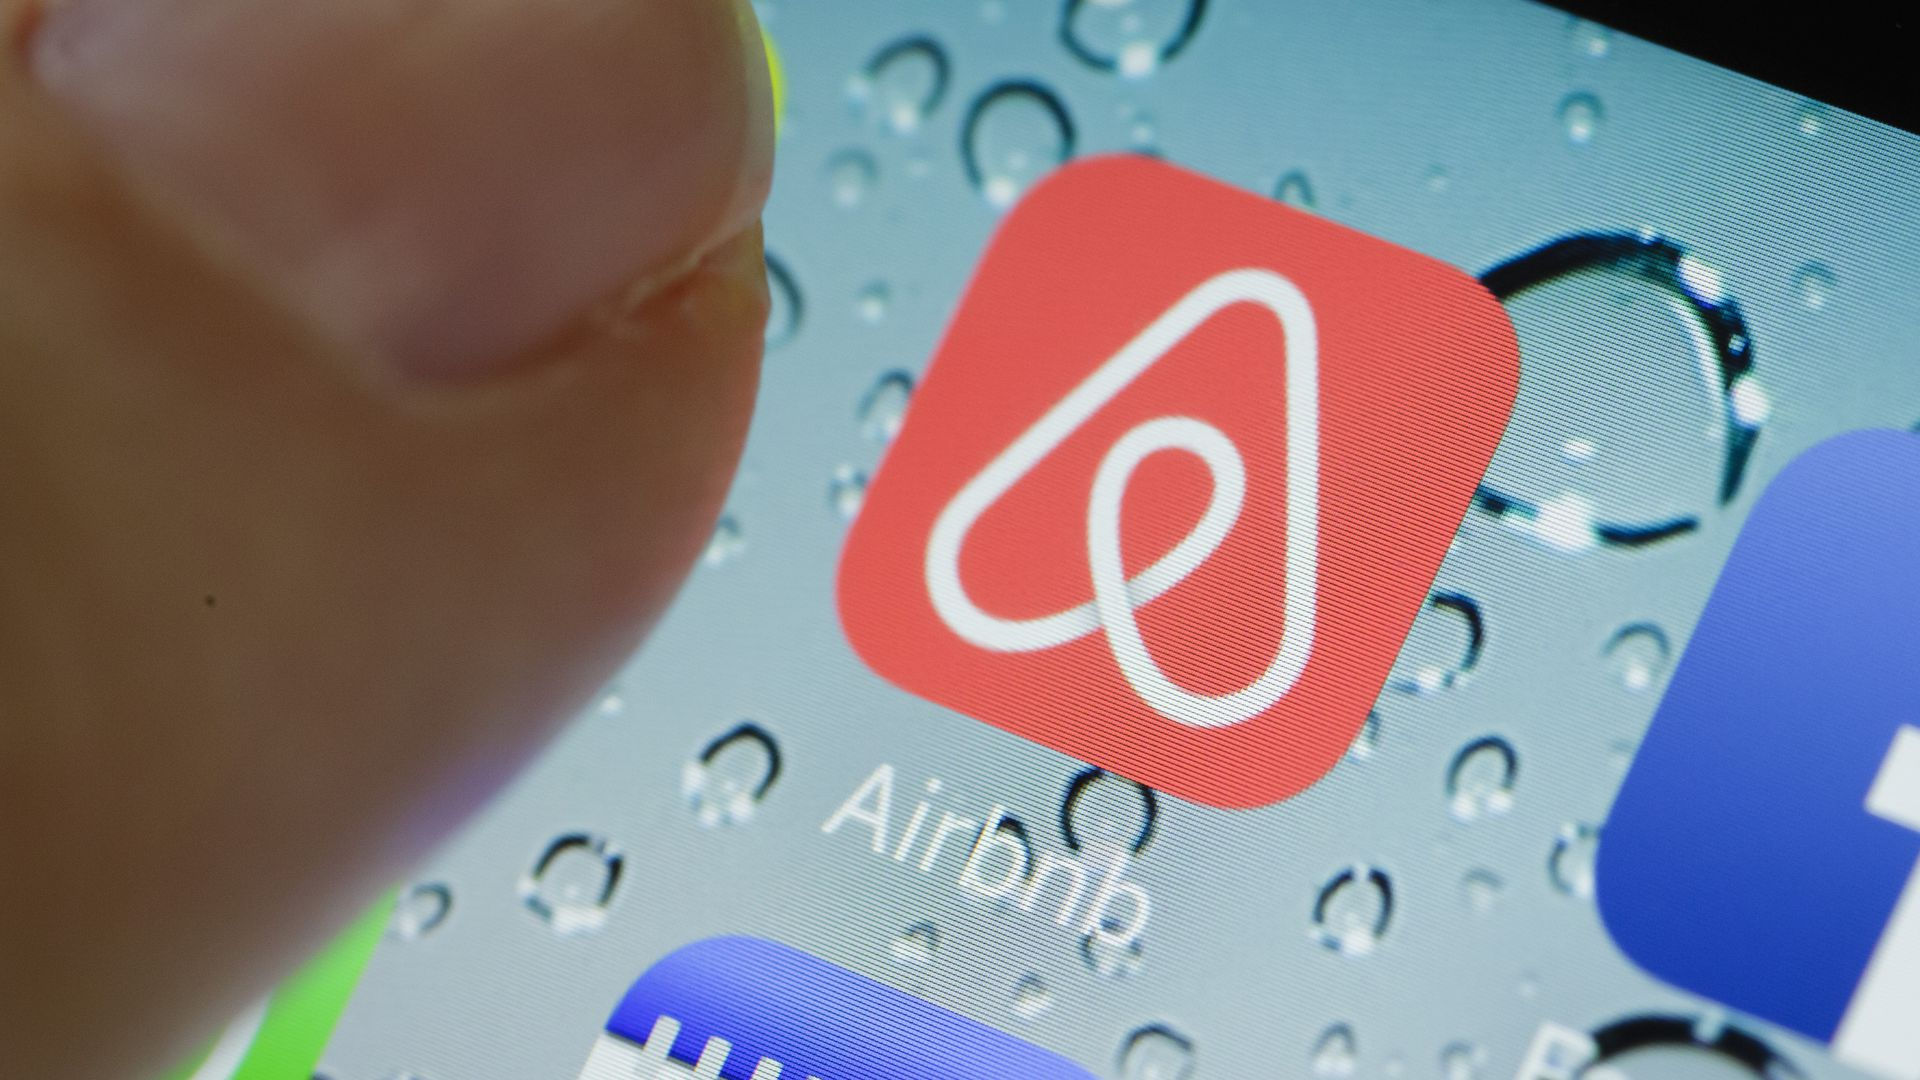 Airbnb gets new chief technology officer